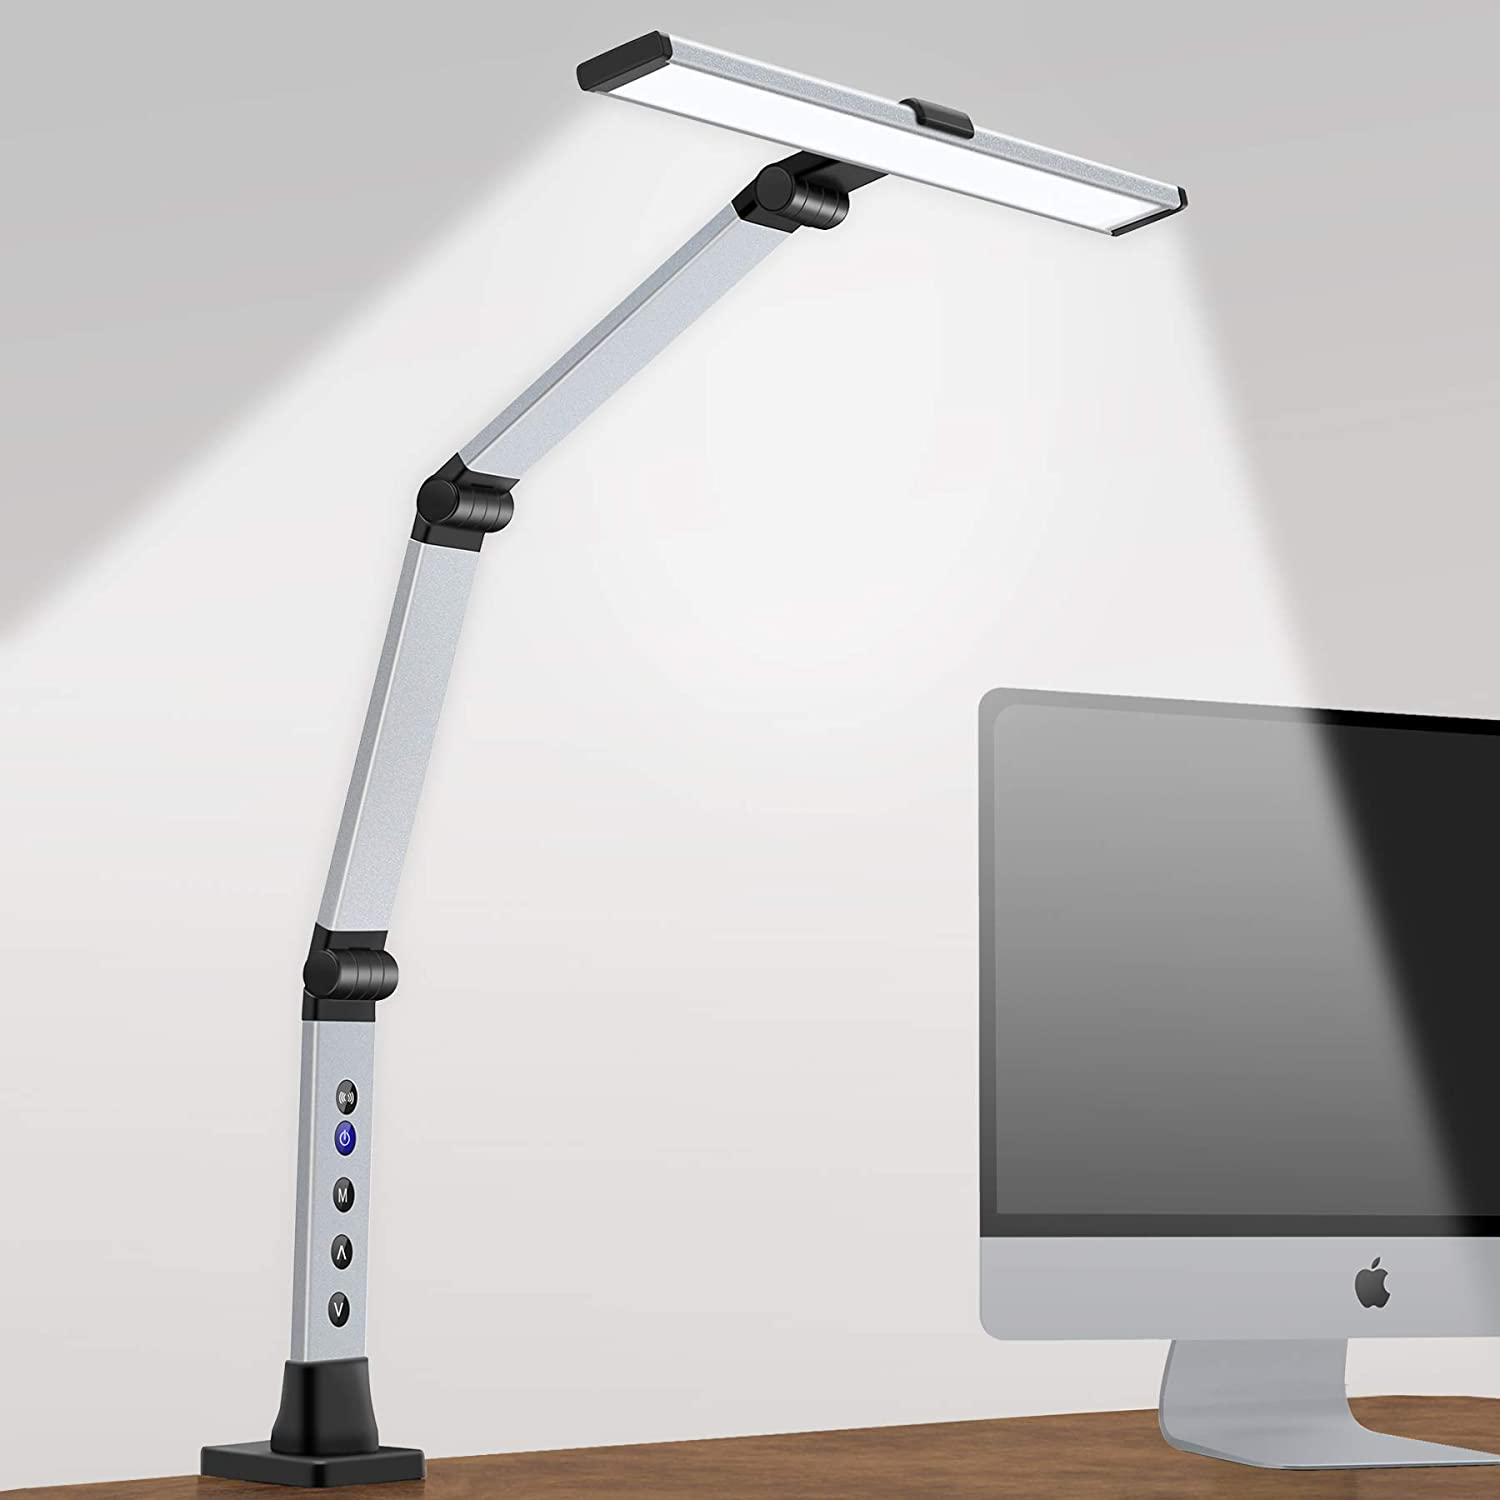 Desk Lamp with Clamp,Eye-Caring Swing Arm Desk Lamp,Stepless Dimming & Adjustable Color Temperature Modern Architect Task Lamps with Setting Memory for Home Office,Reading,Studying 12W-Silvery